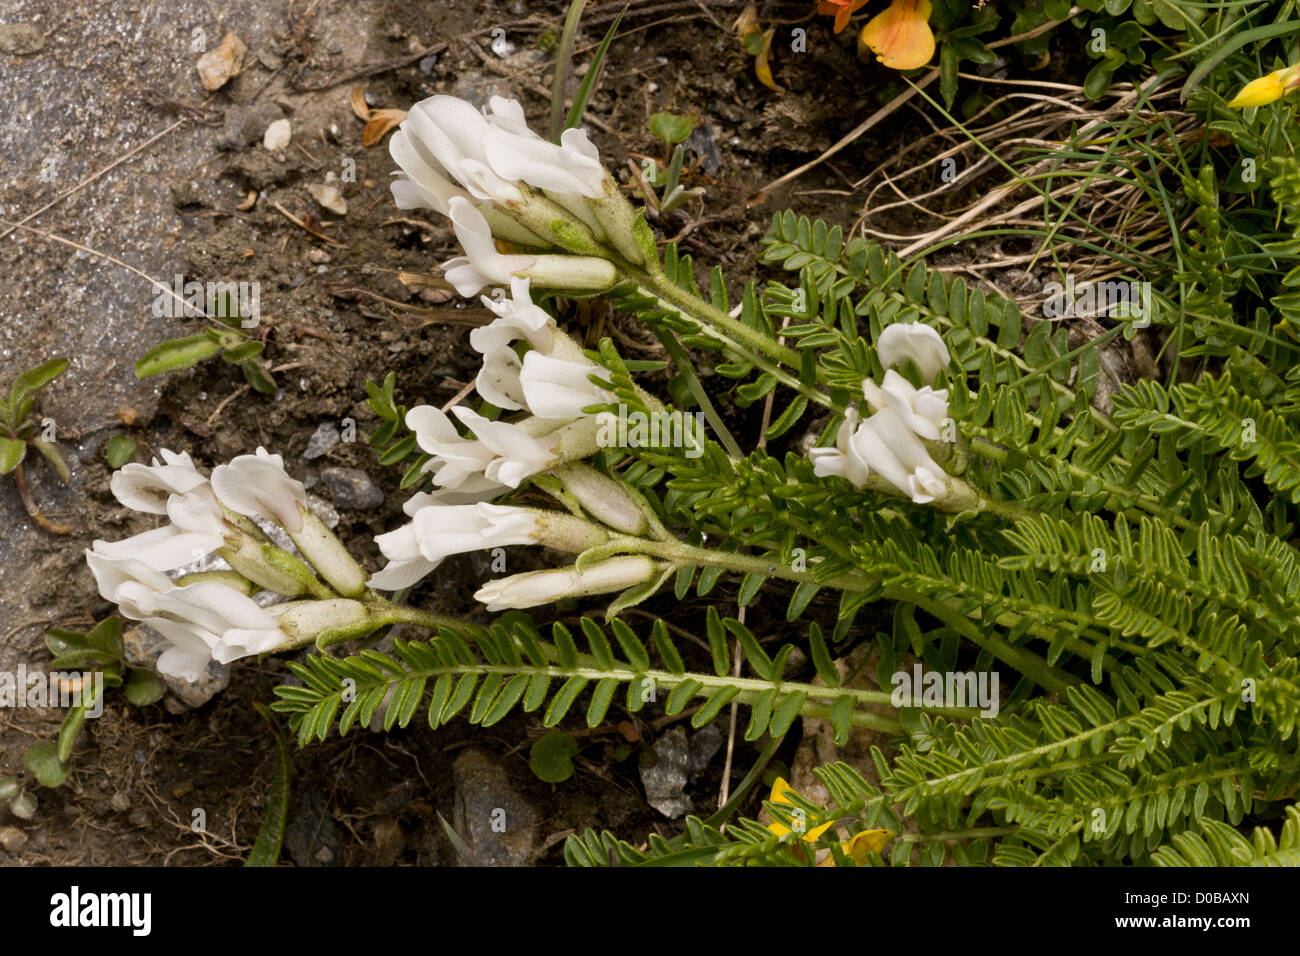 Sprawling Milk Vetch (Astragalus depressus) in flower, French Alps - Stock Image